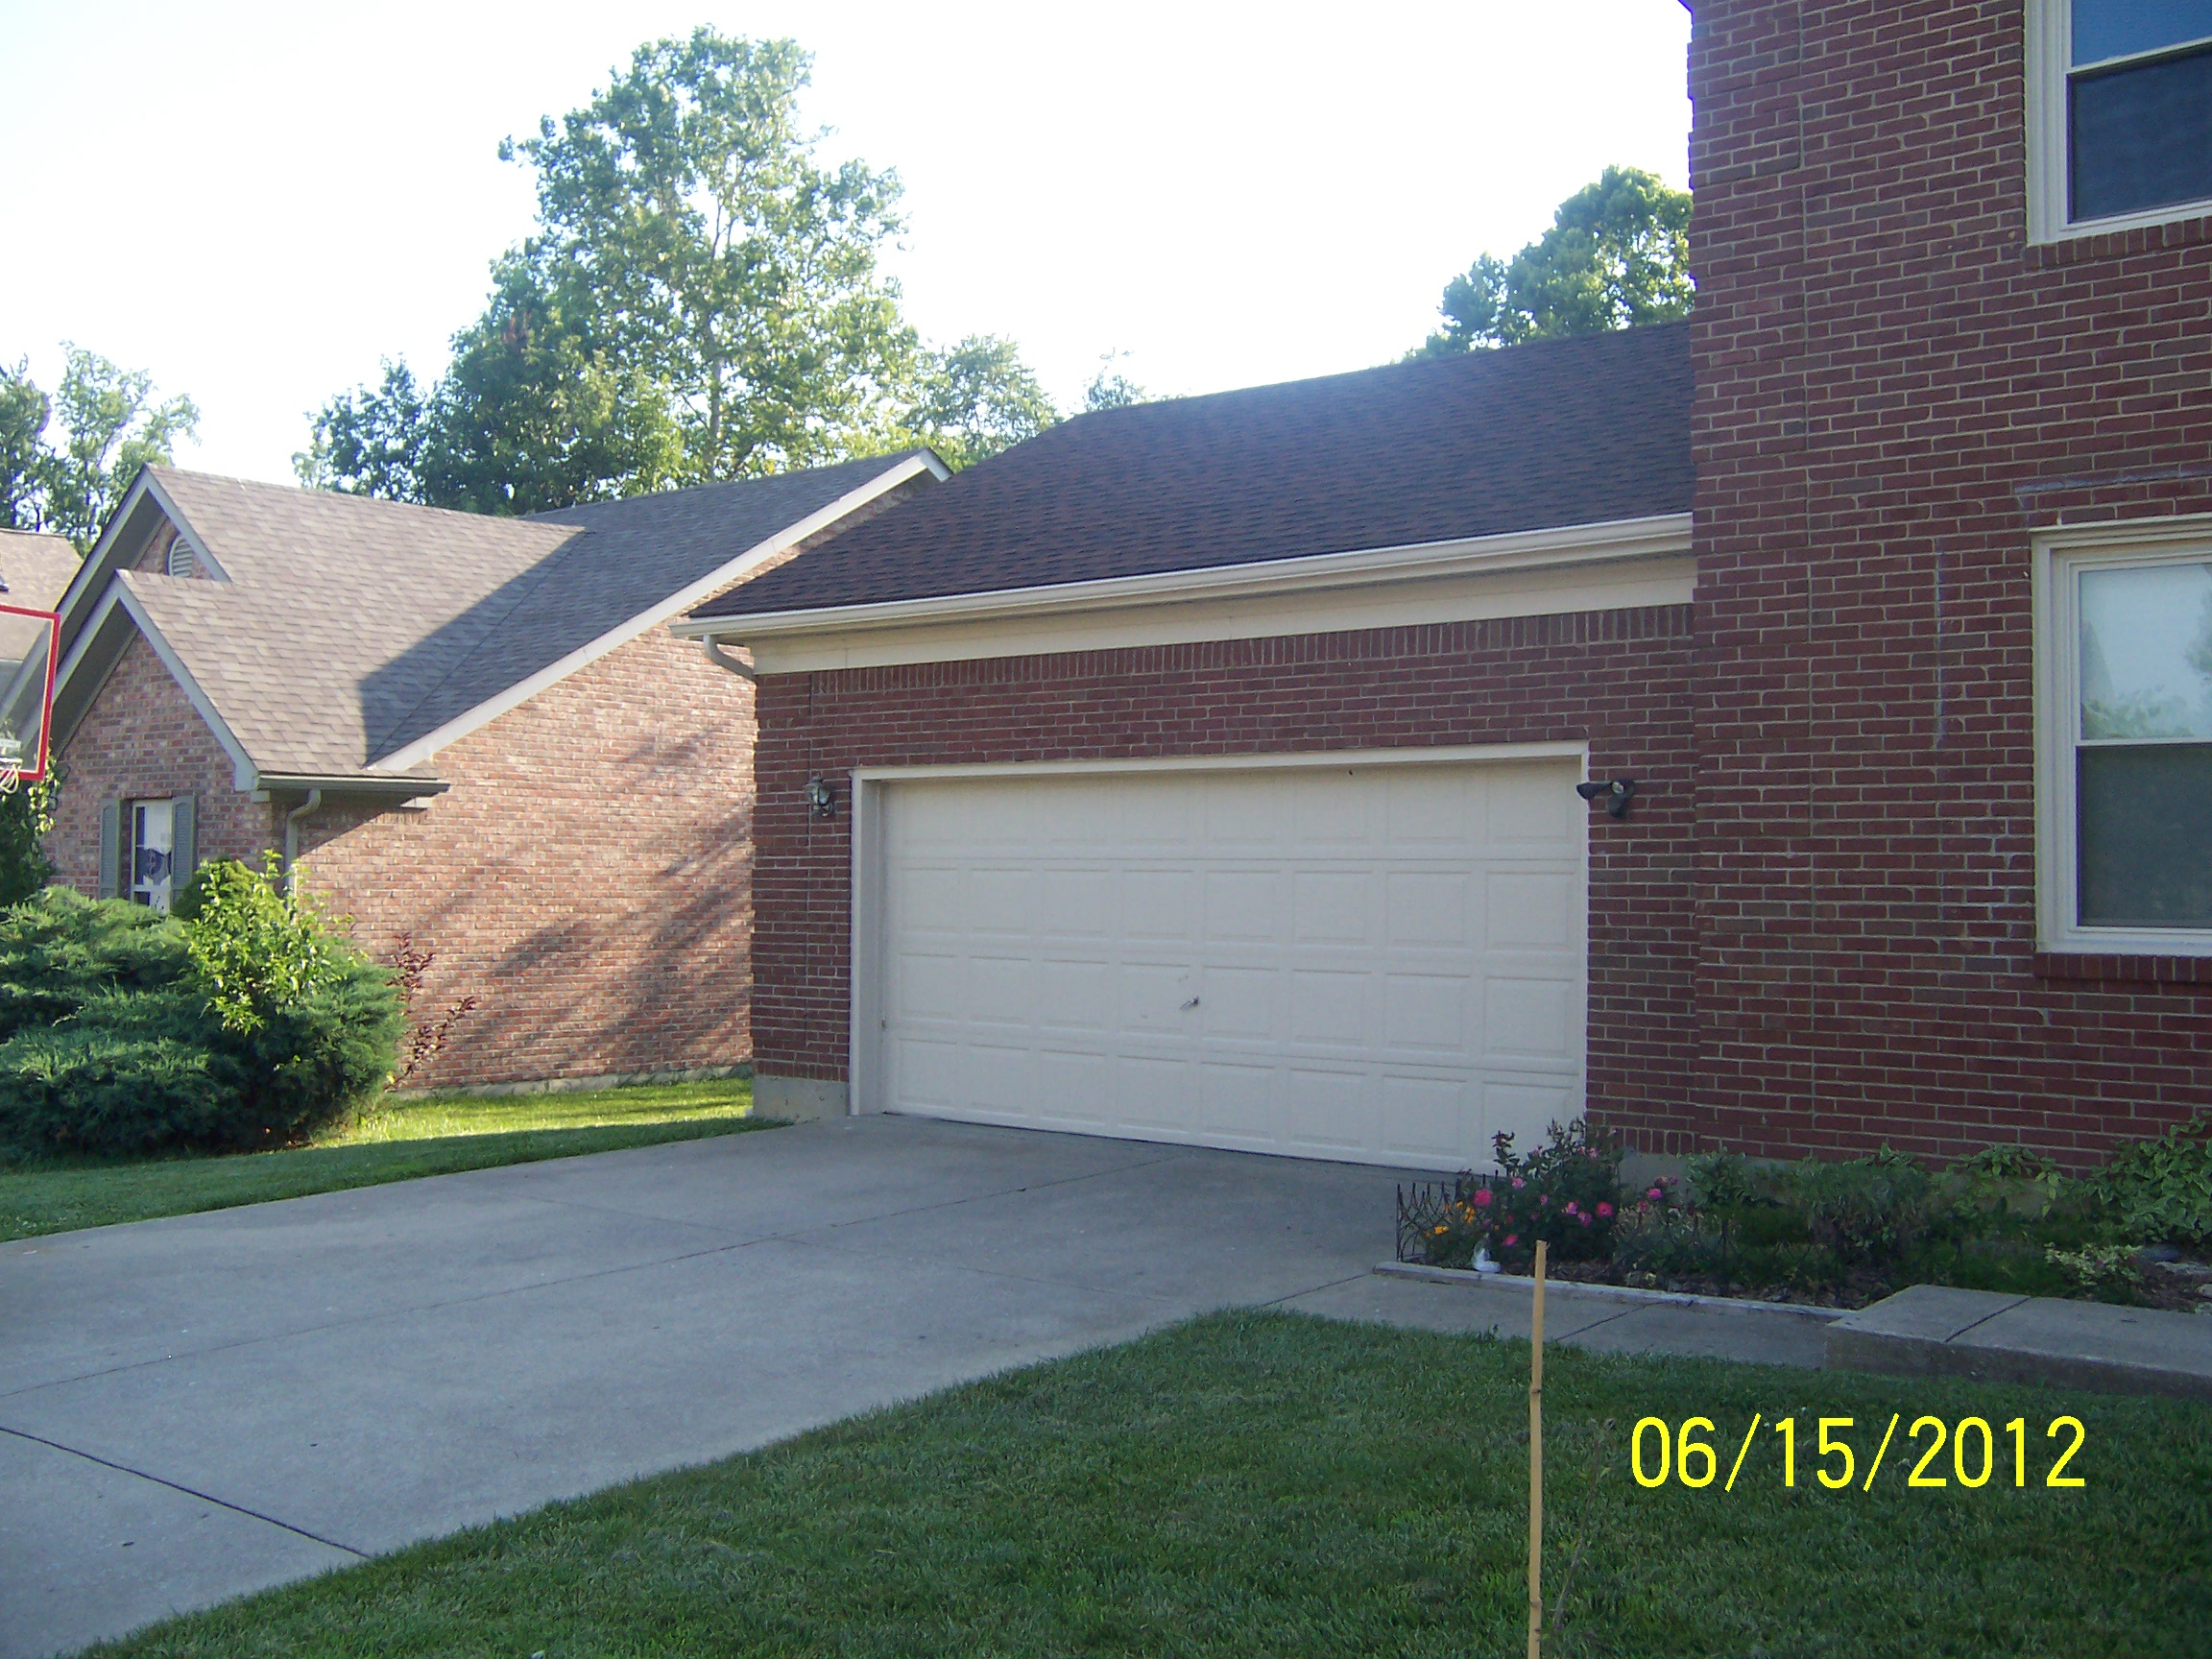 Vinyl siding and soffits gallery louisville ky classic for Classic house vinyl